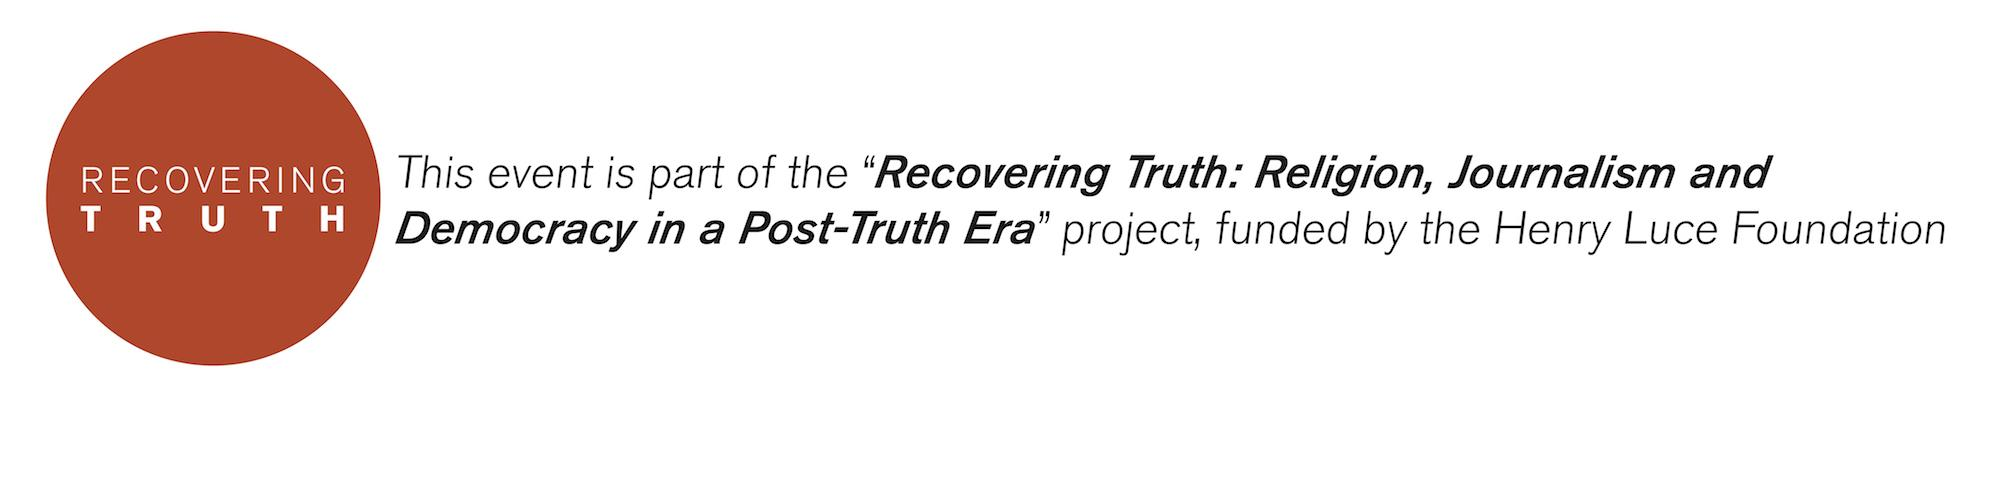 Recovering Truth Event Sponsored by The Henry Luce Foundation